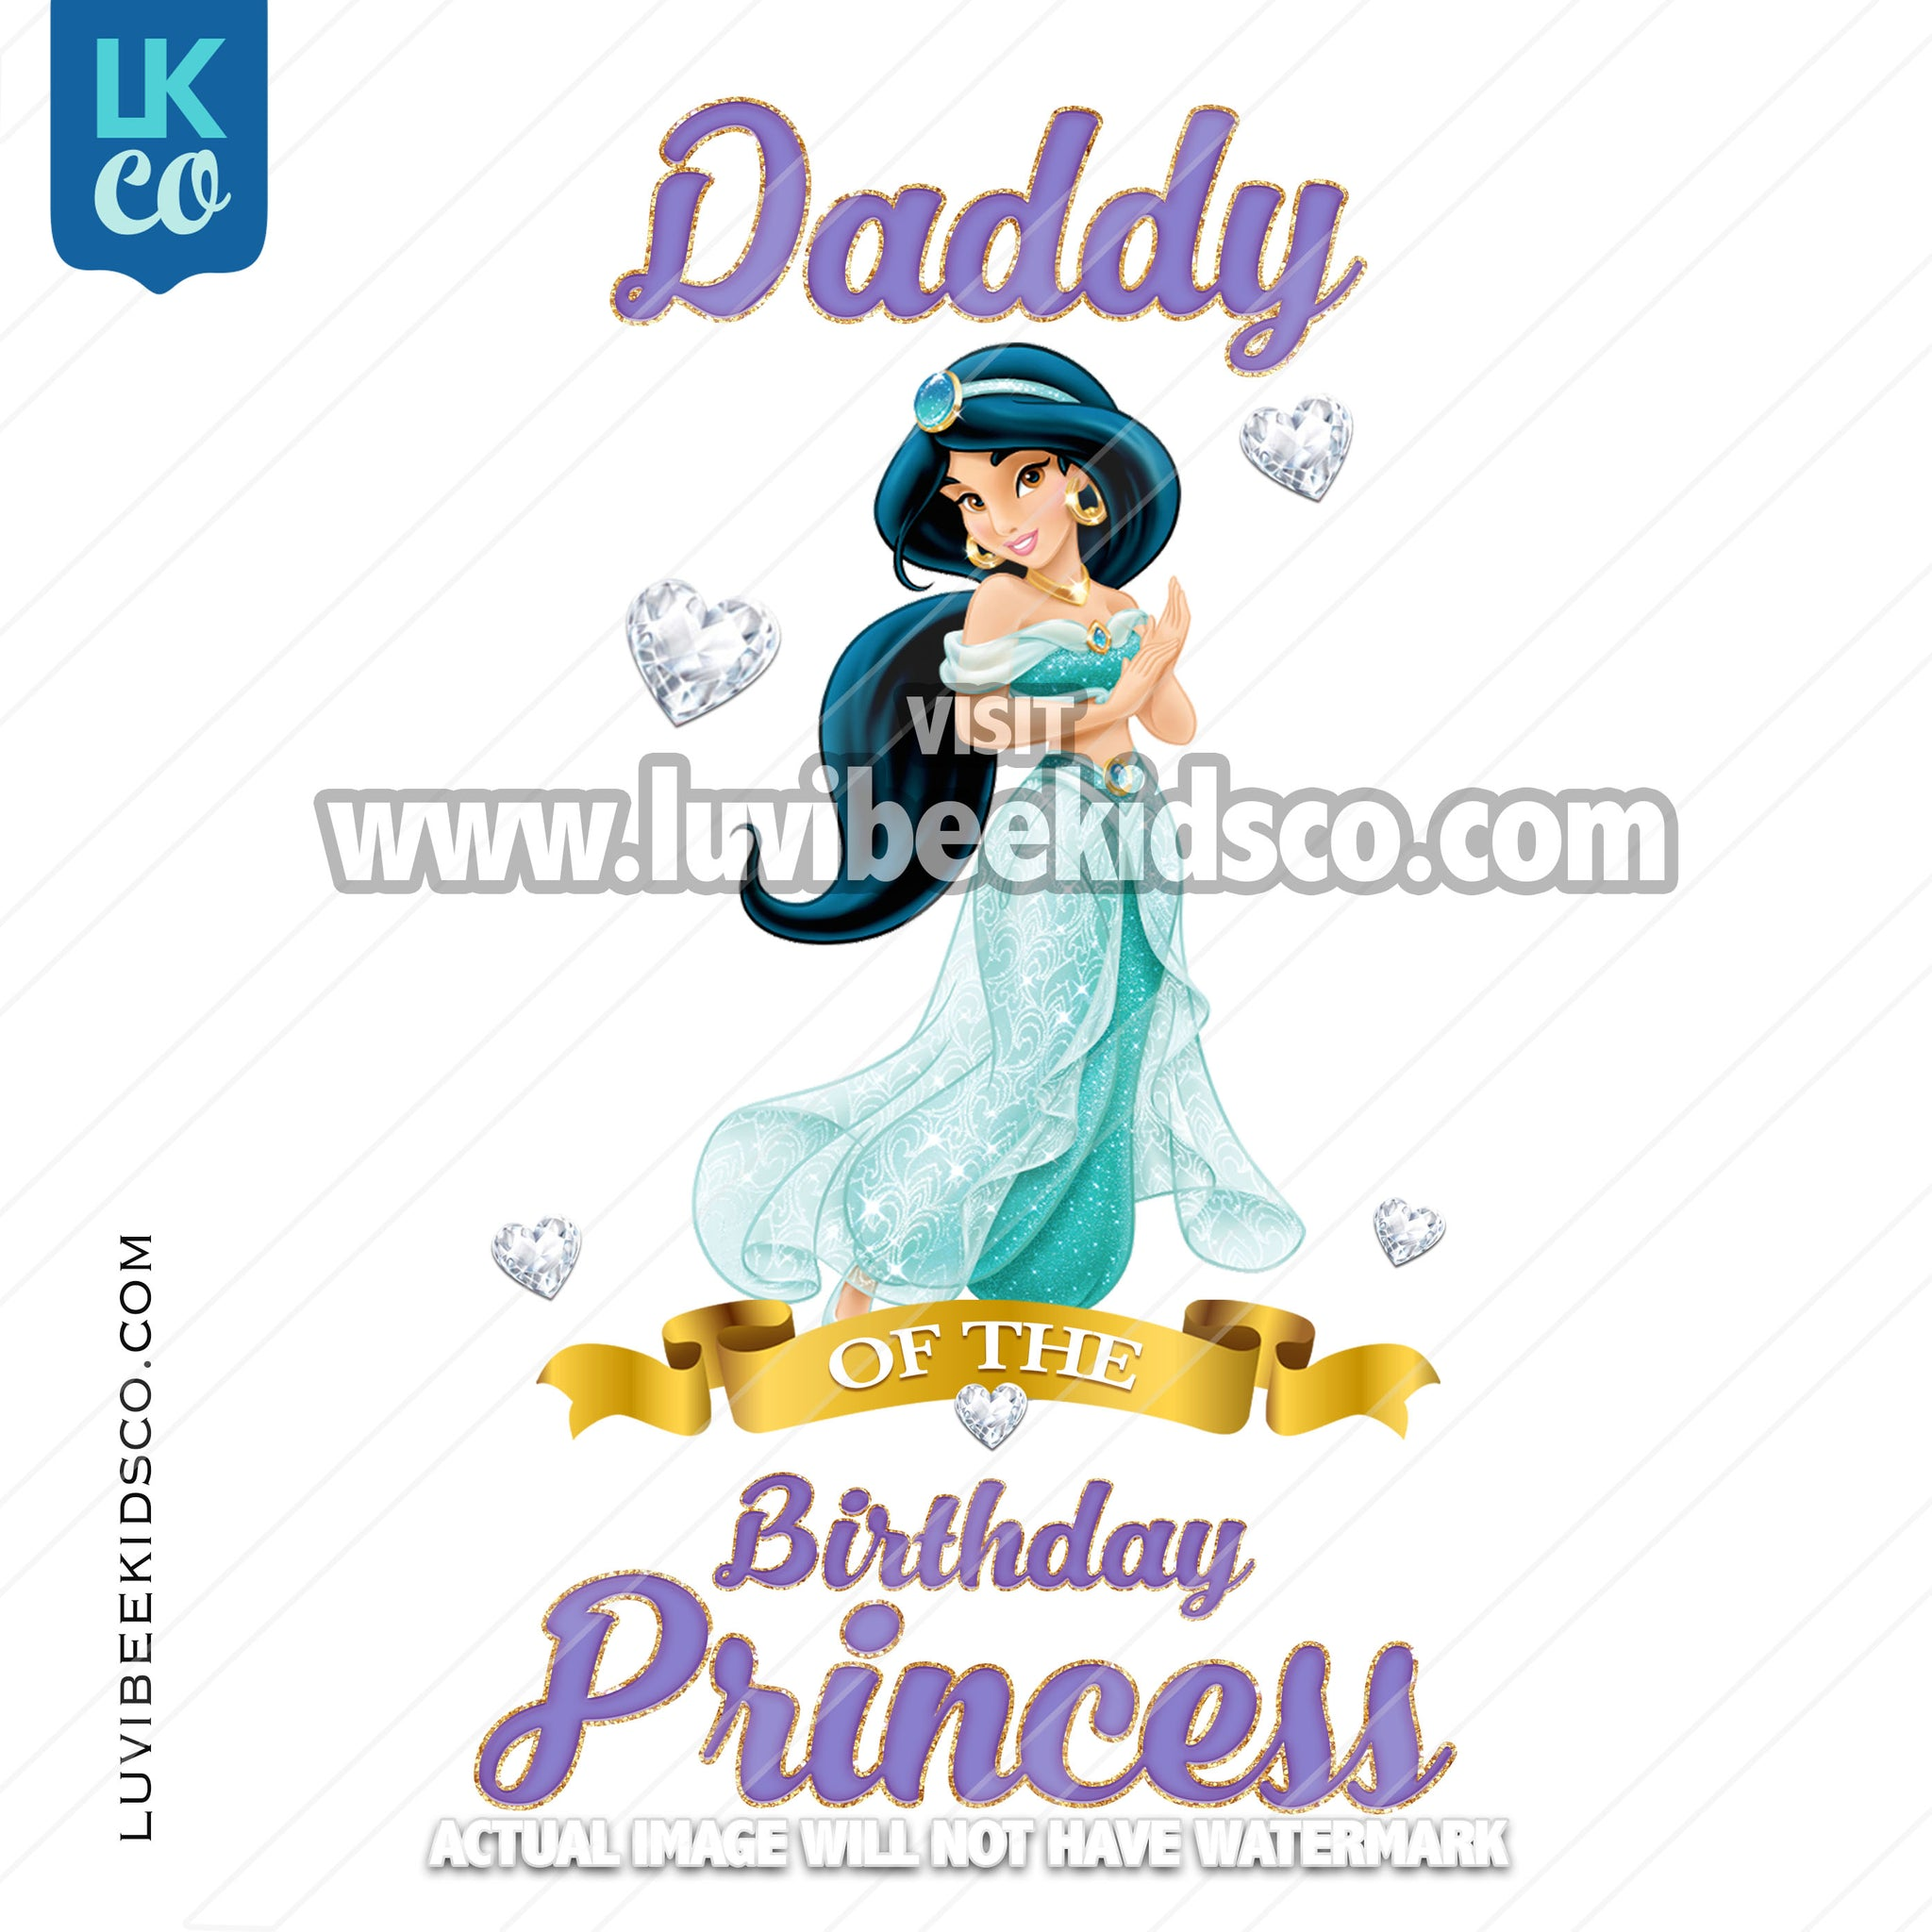 Princess Jasmine Heat Transfer Design | Daddy of the Birthday Princess - Digital File or Printed Transfer - LuvibeeKidsCo